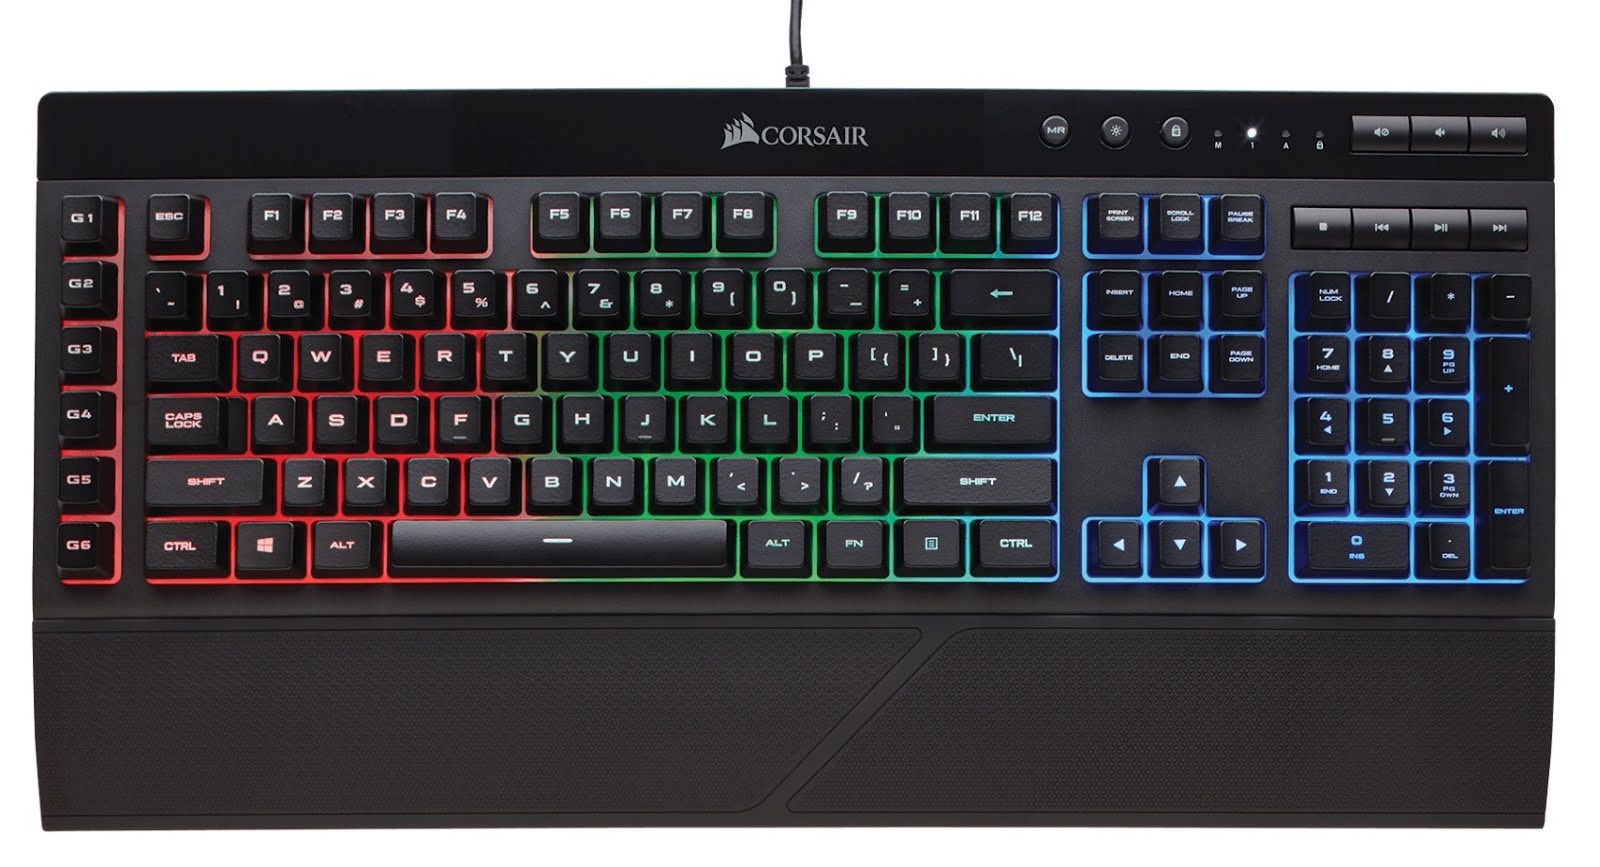 Corsair launched the K55 RGB Gaming Keyboard in India